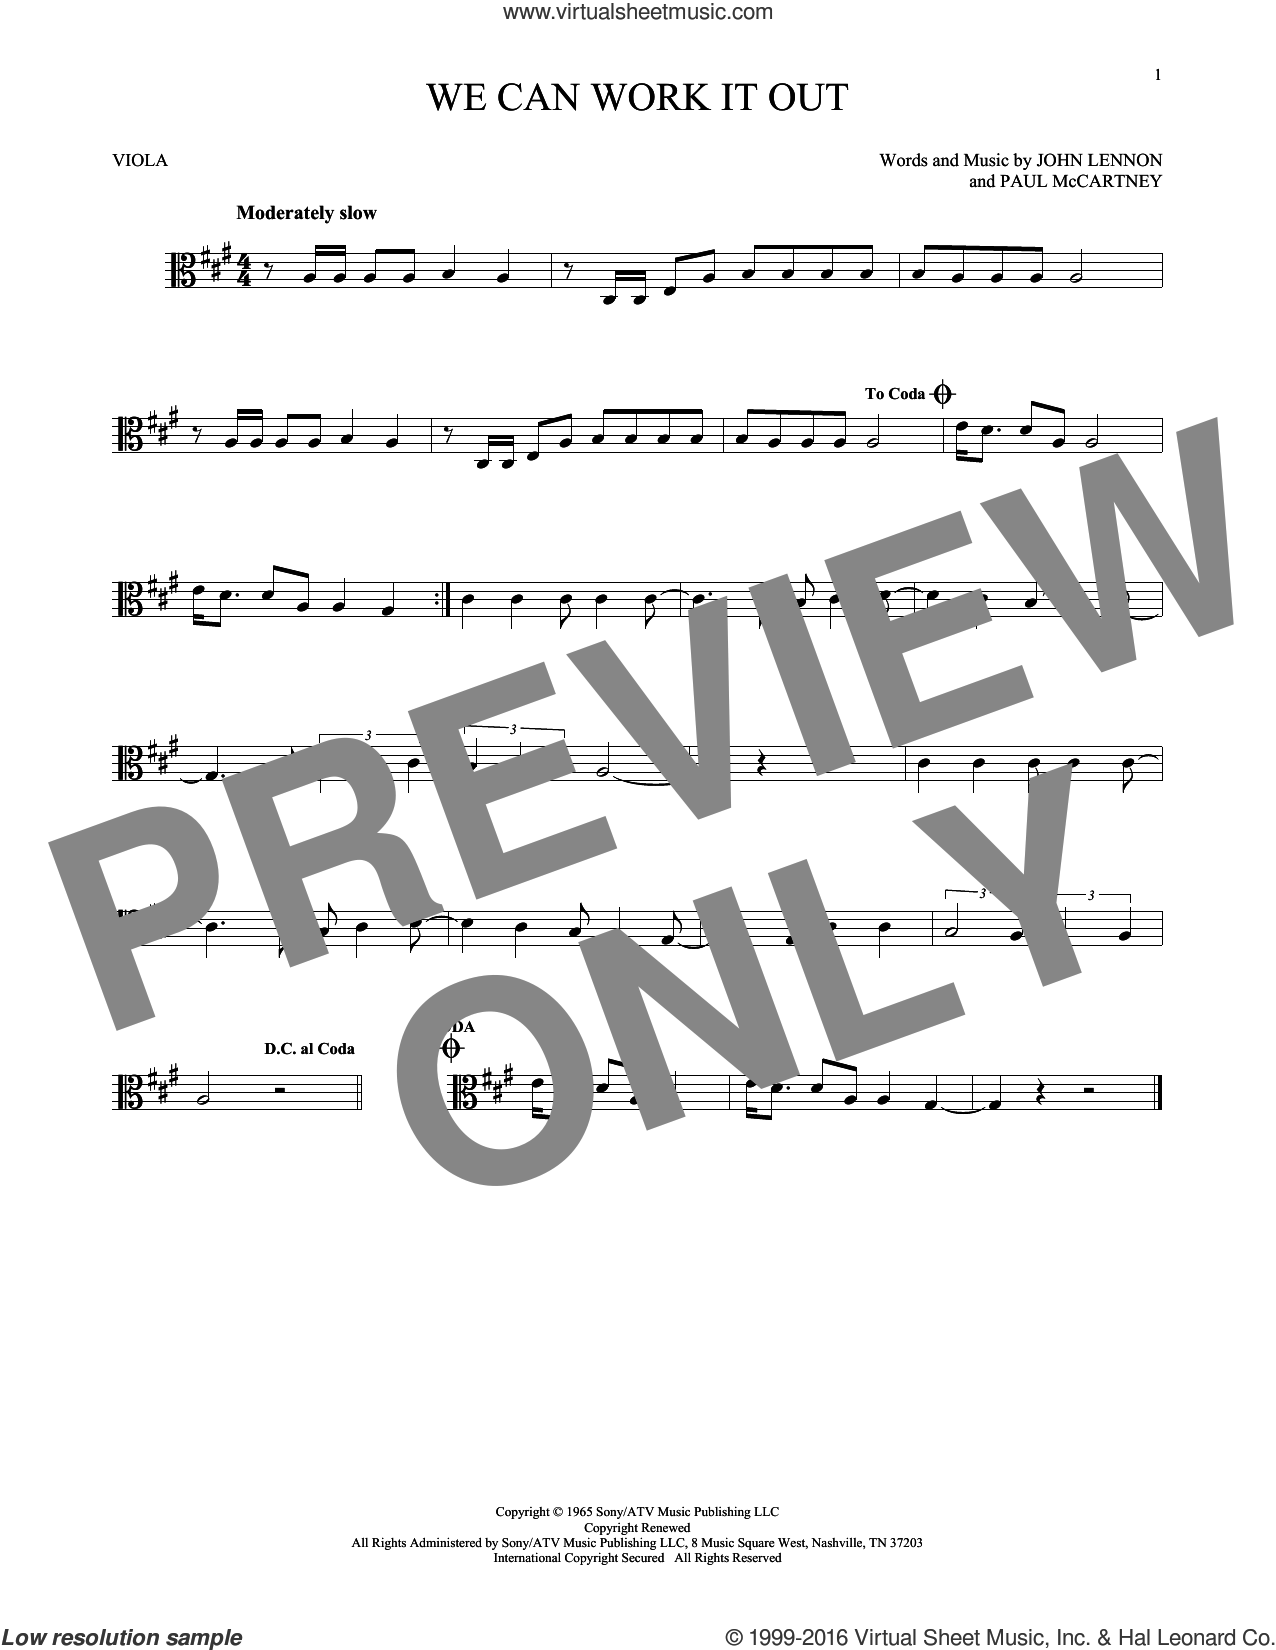 We Can Work It Out sheet music for viola solo by The Beatles, John Lennon and Paul McCartney. Score Image Preview.